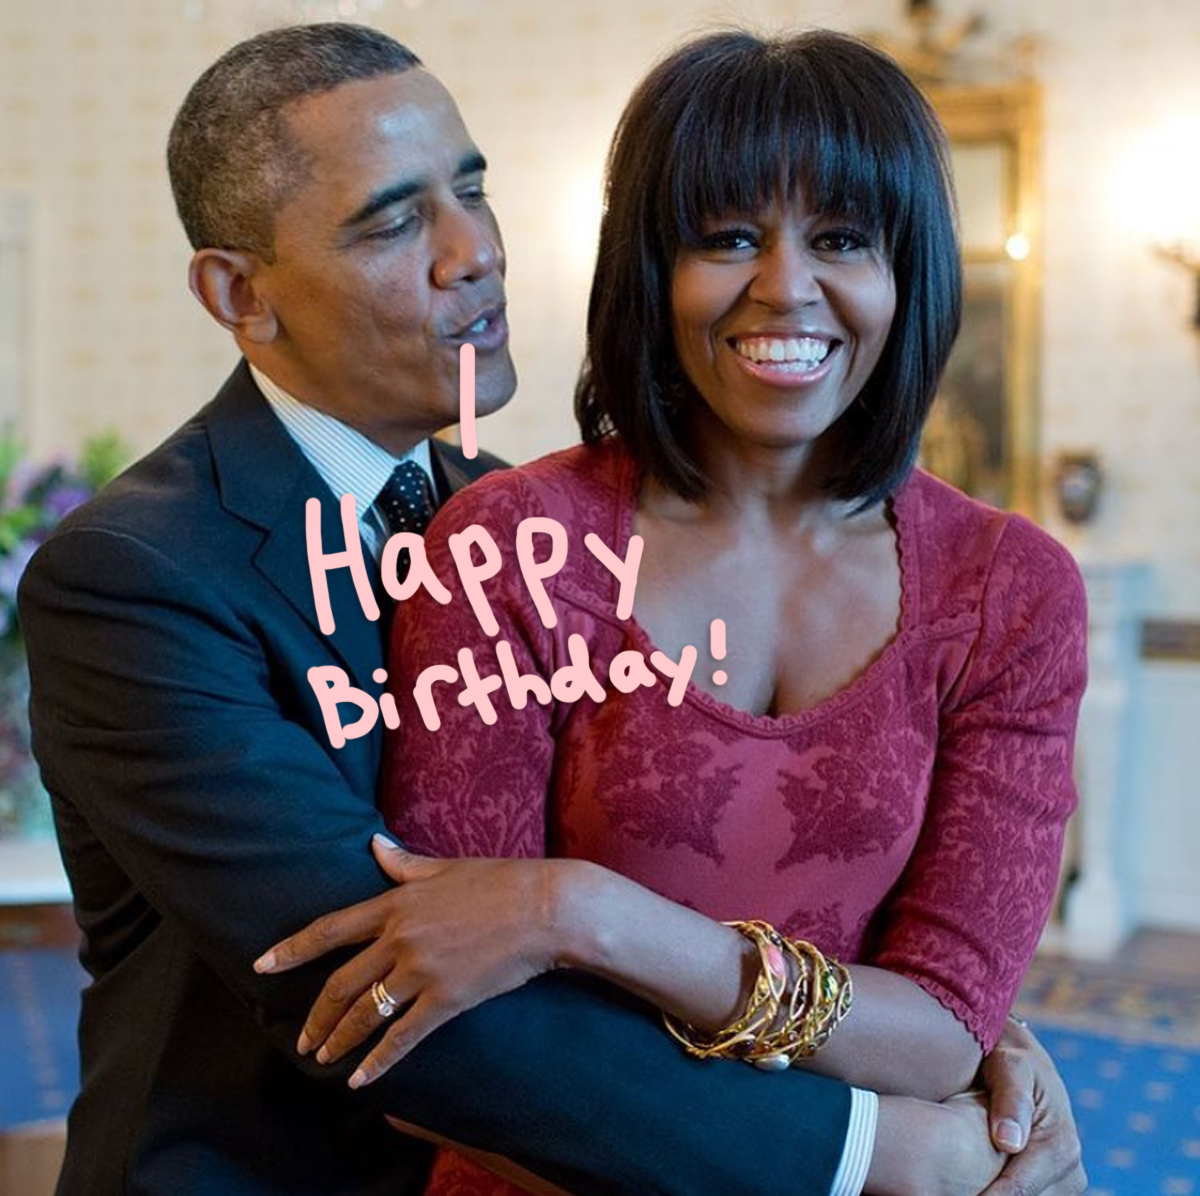 Barack Obama Shares A Sweet Message To Michelle Obama For Her BDAY!